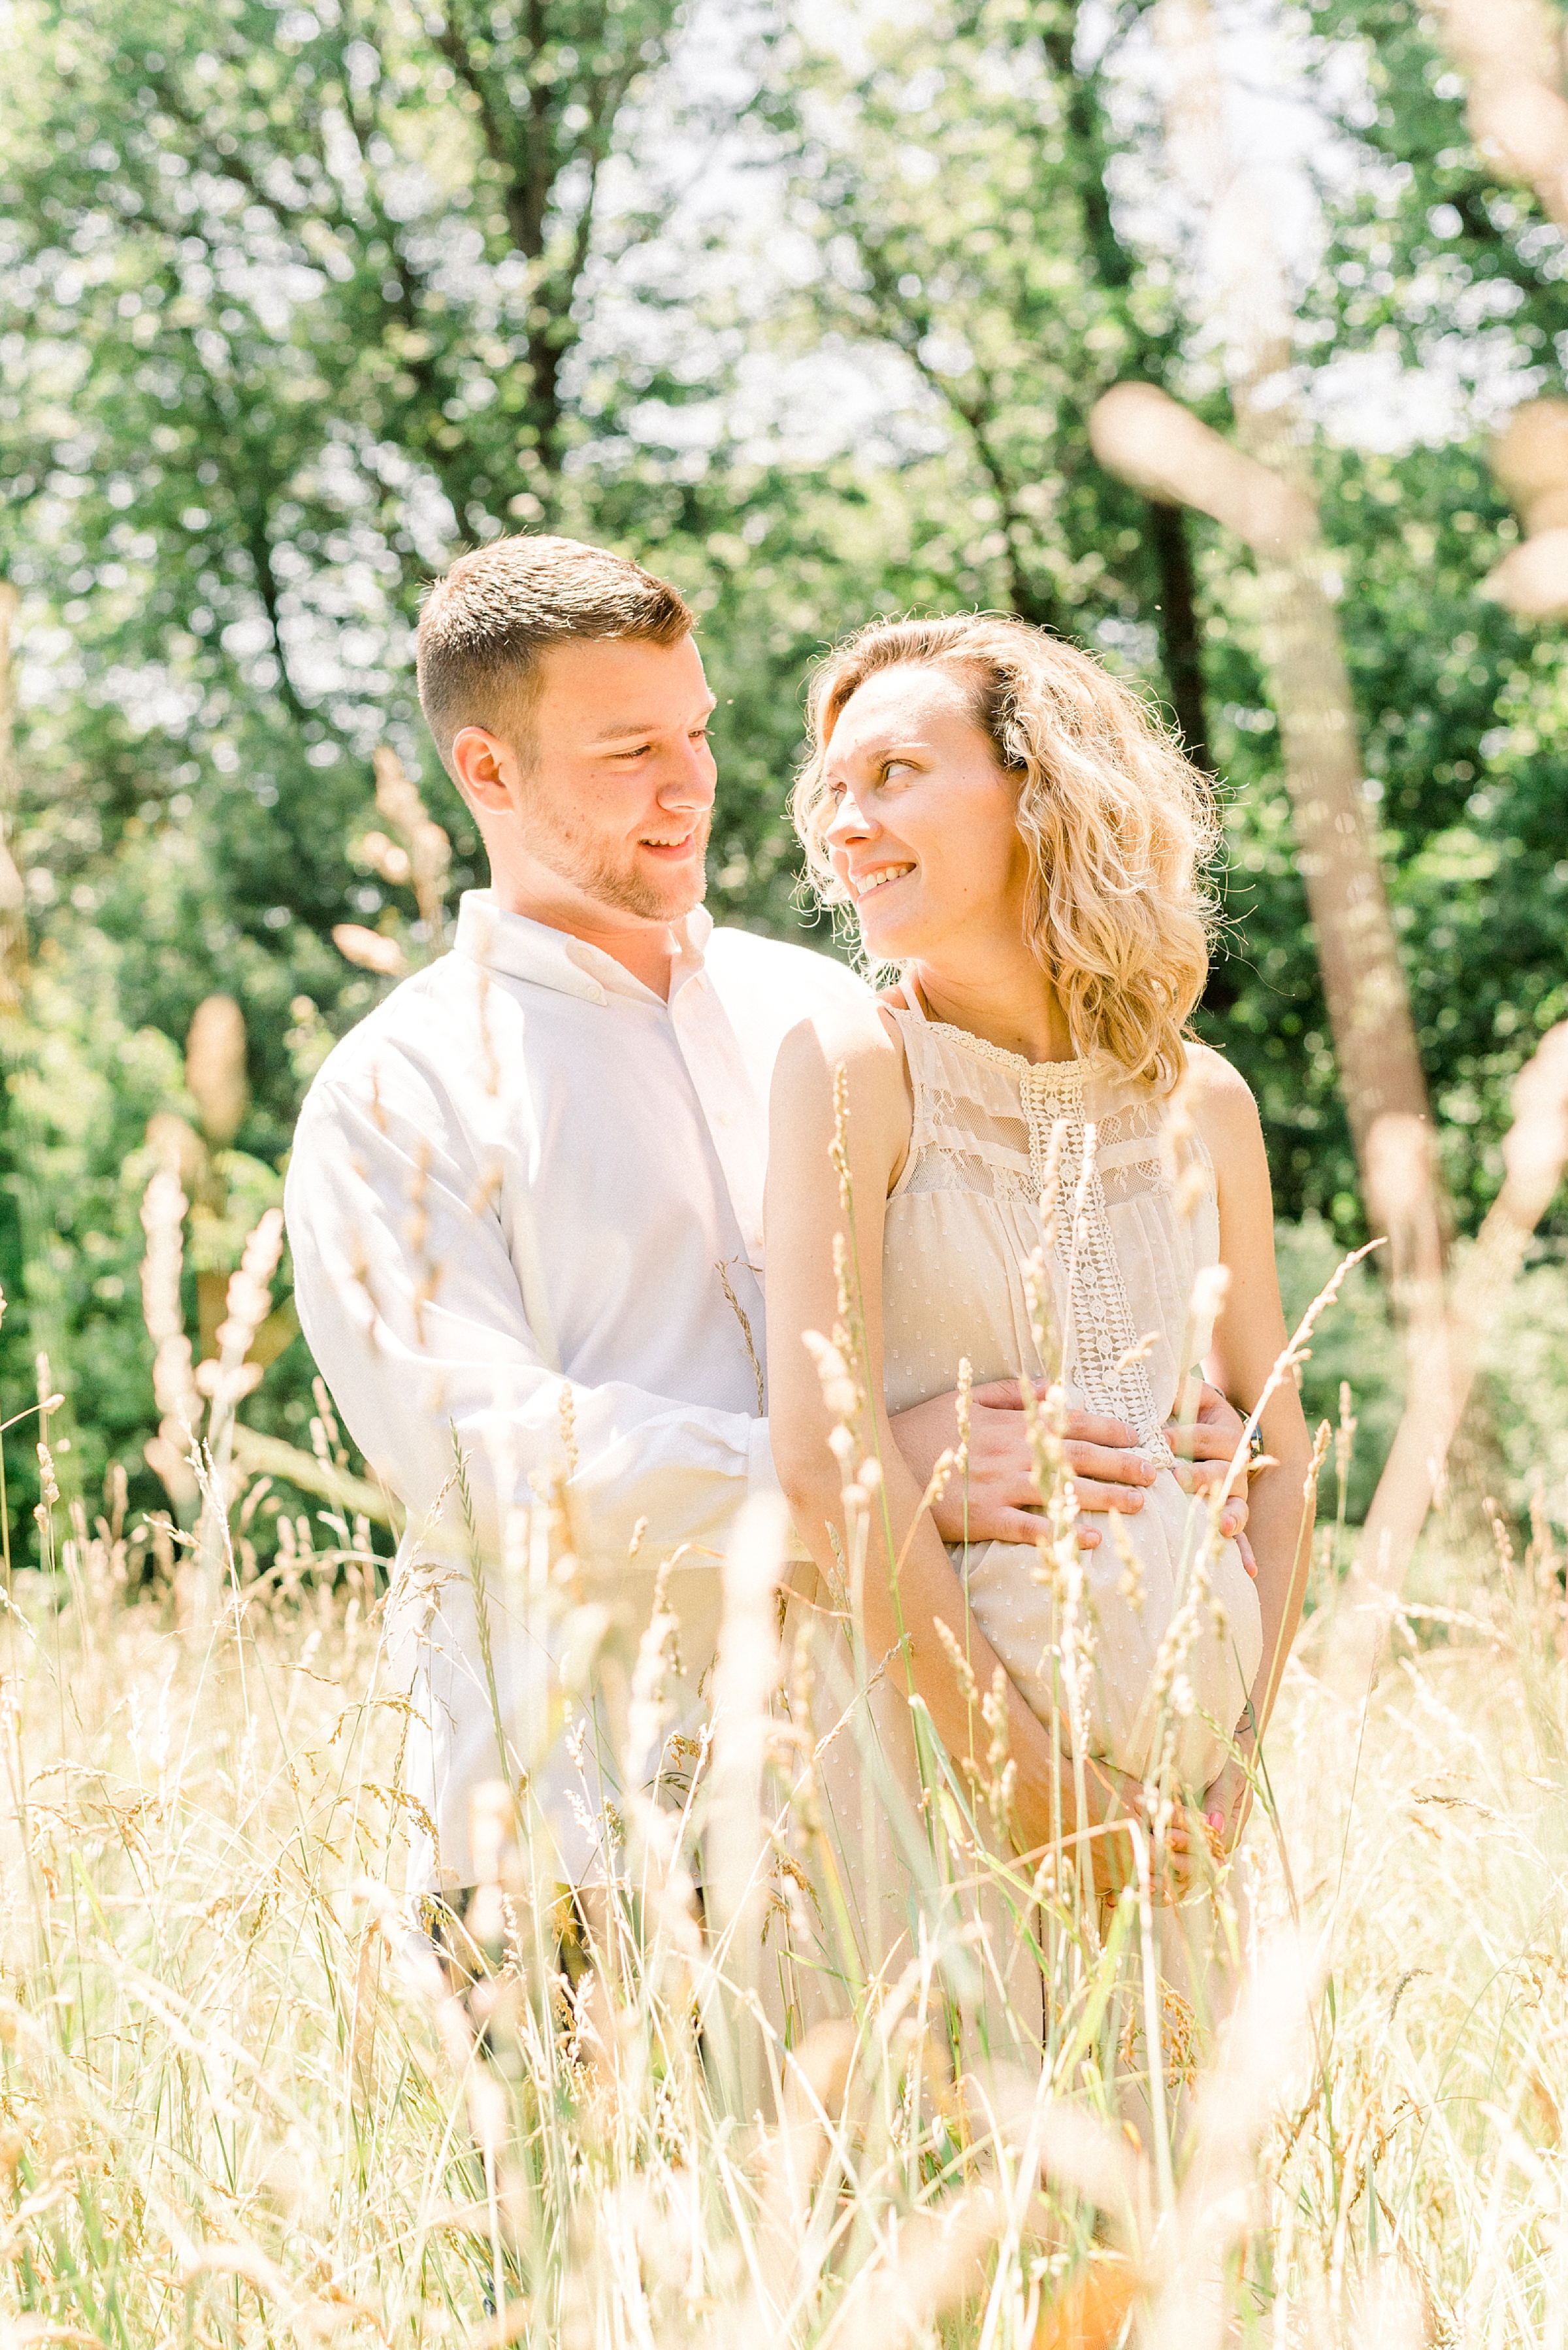 Couple in love during a maternity session on a farm